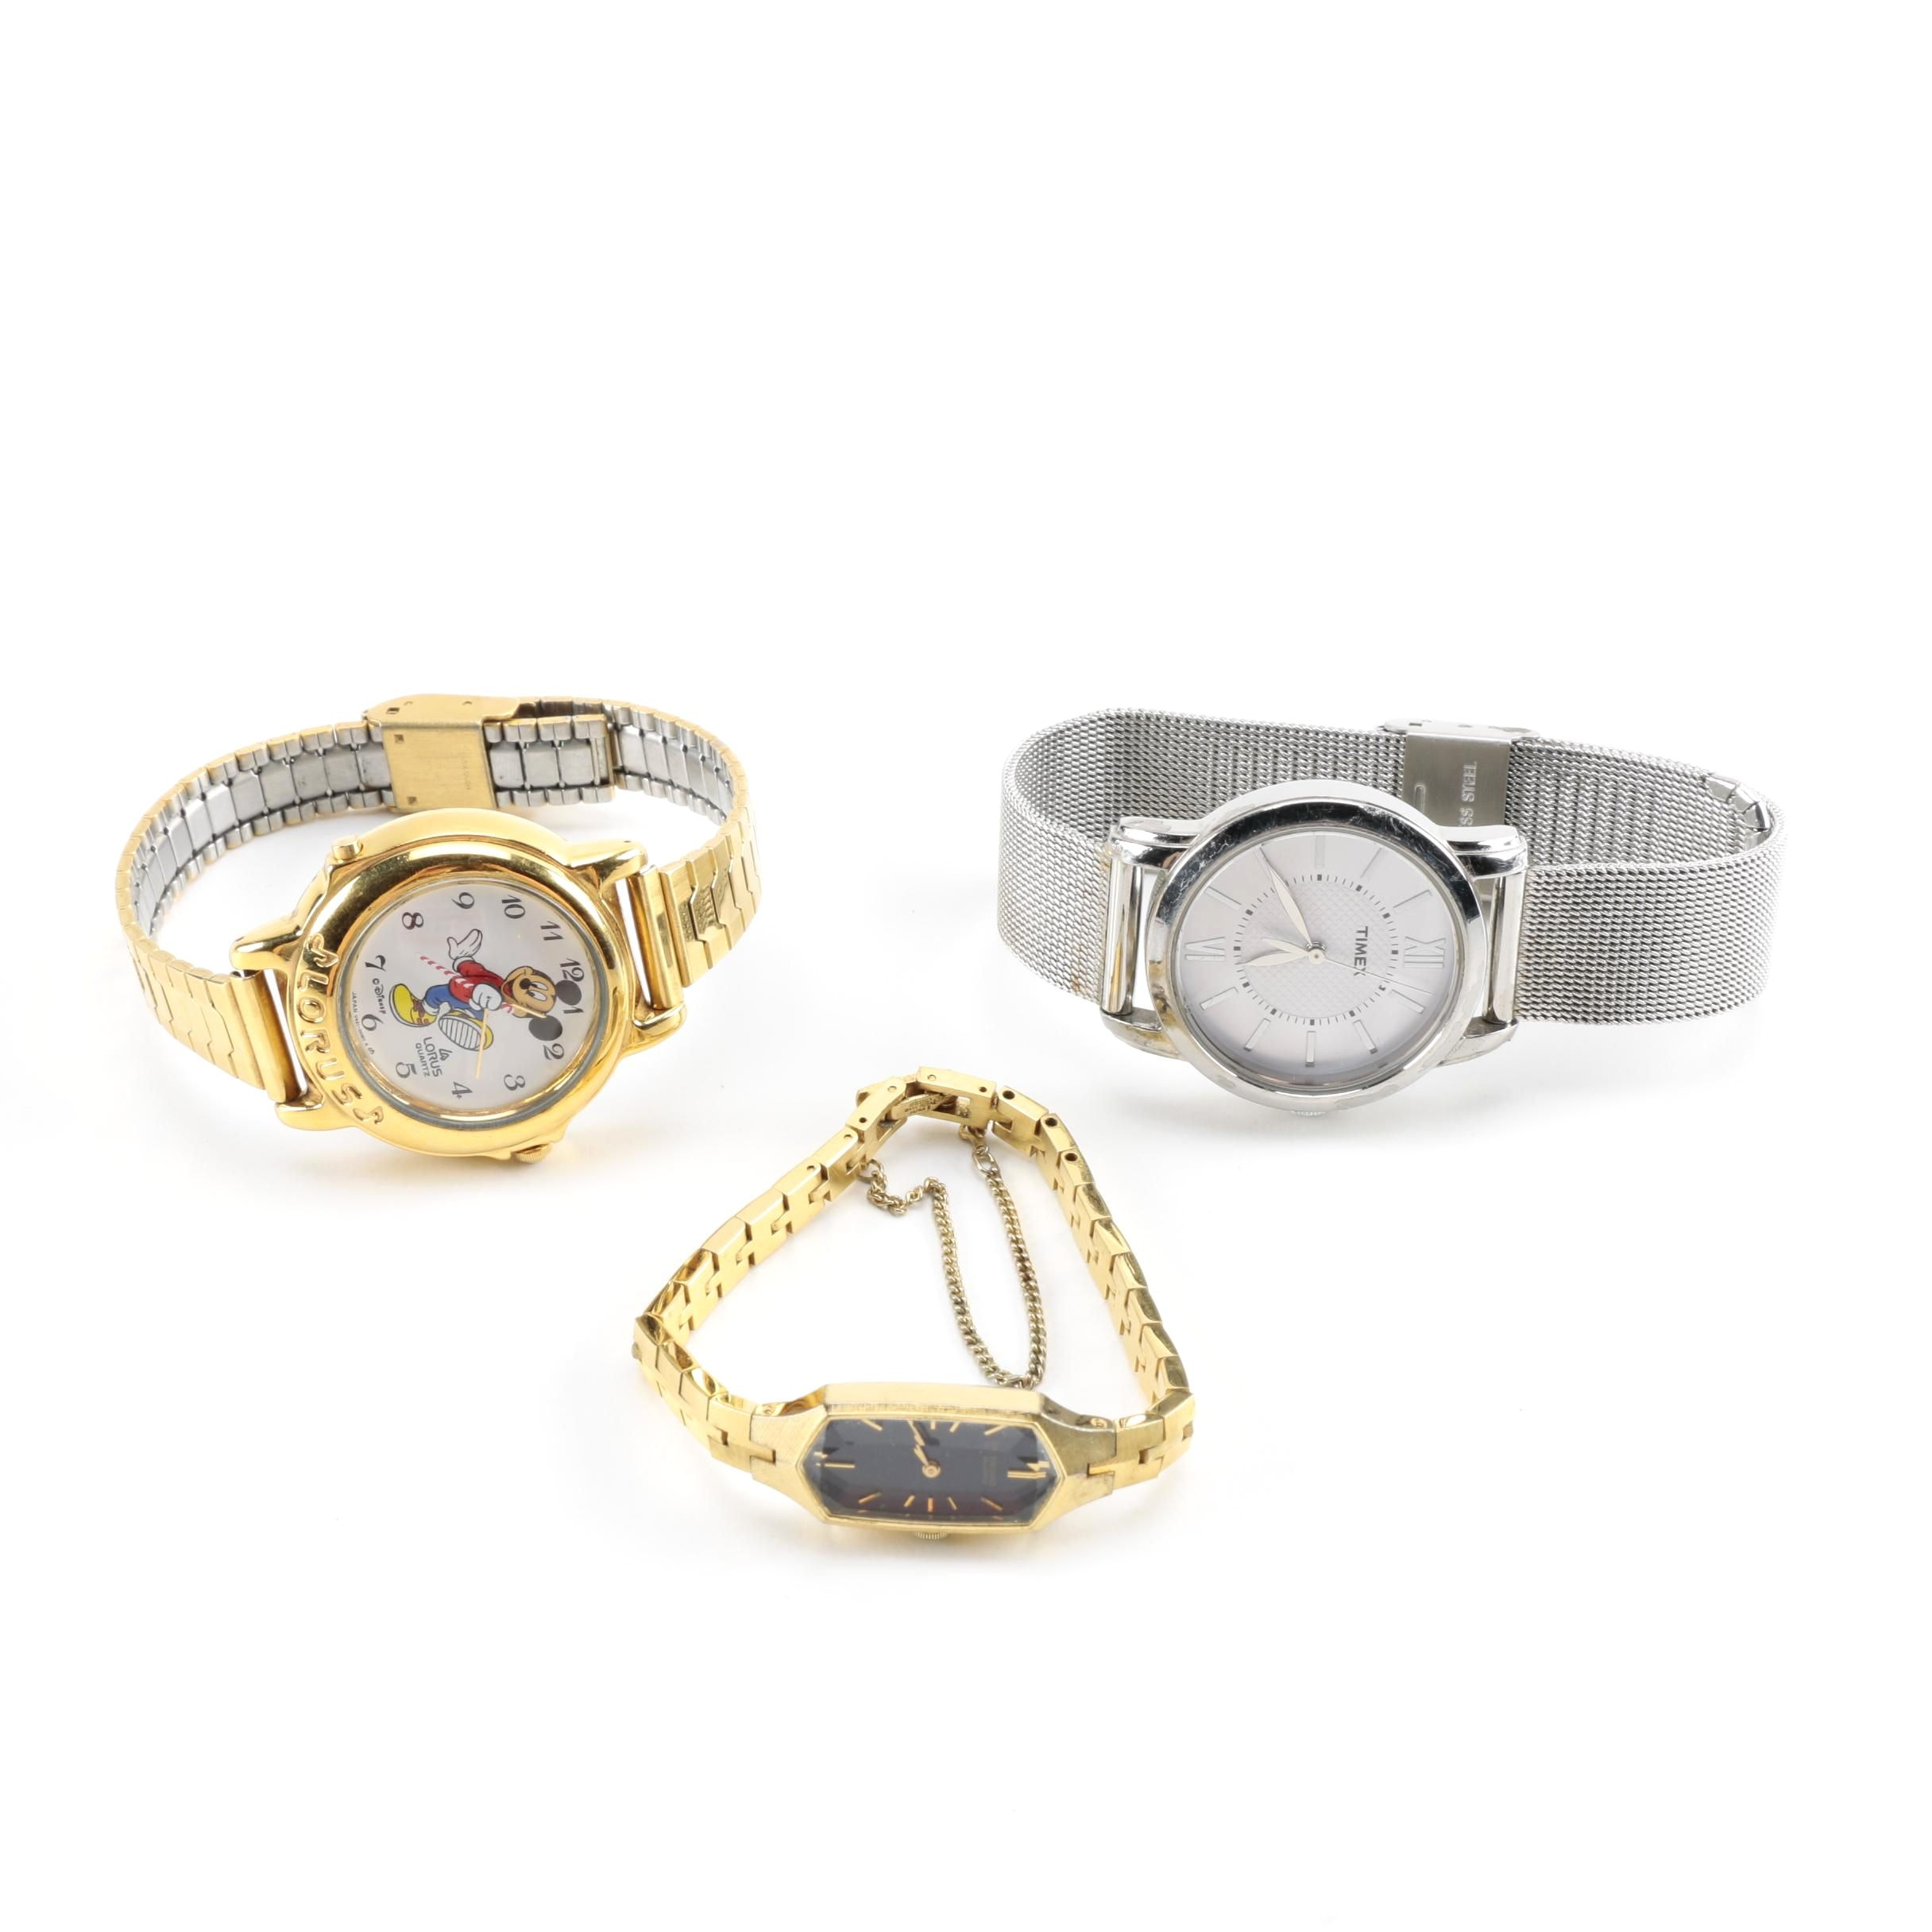 Assorted Wristwatches Including Seiko